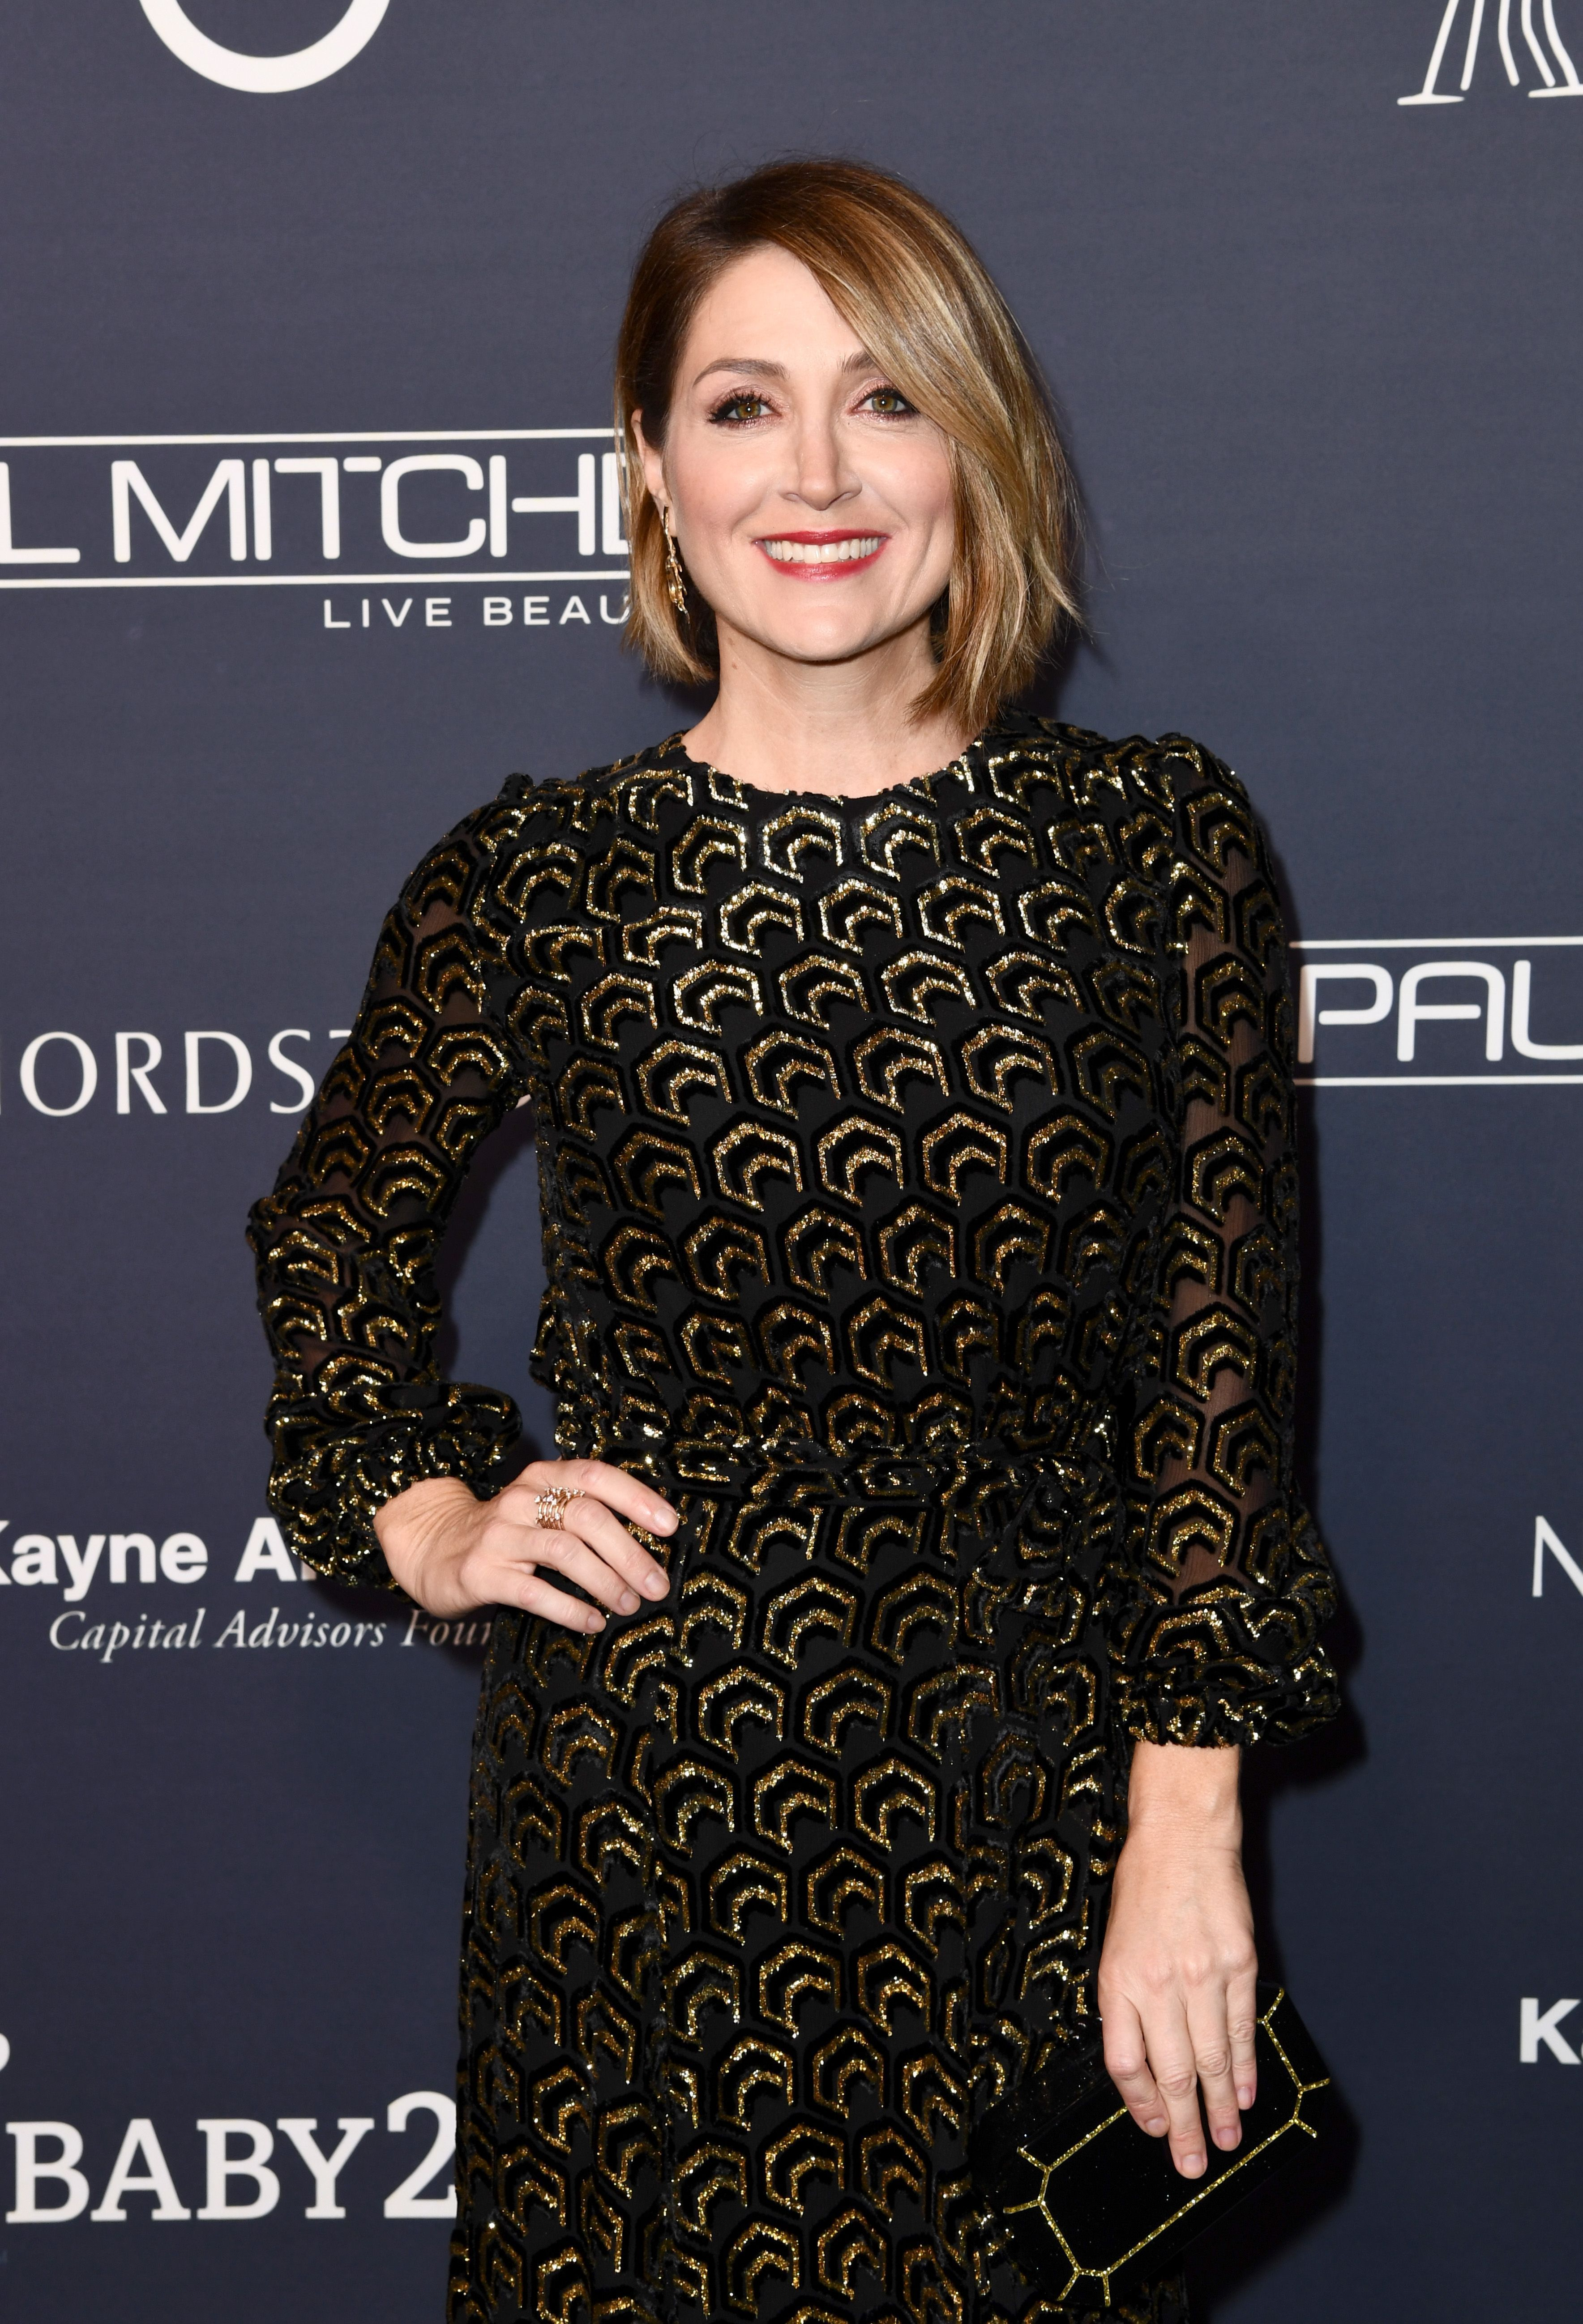 Top 20 Richest Actresses In The World In 2019 Sasha